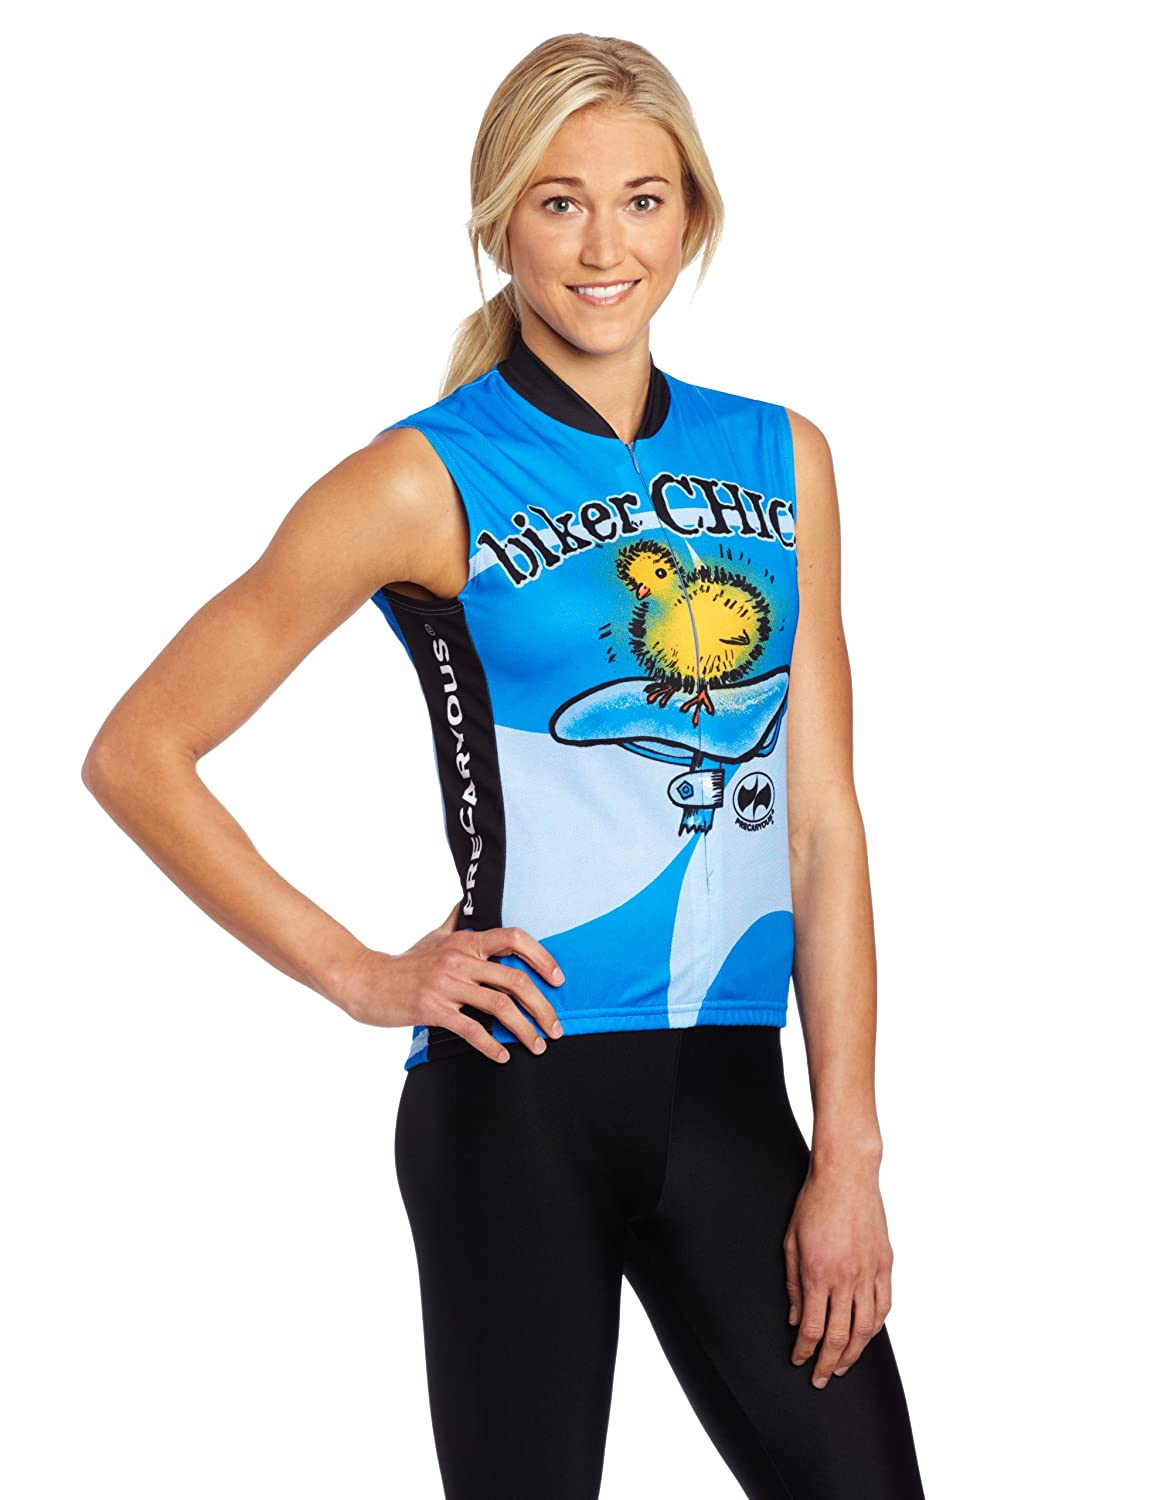 fdd0462aa Amazon.com   World Jerseys Women s Biker Chick Cycling Jersey ...